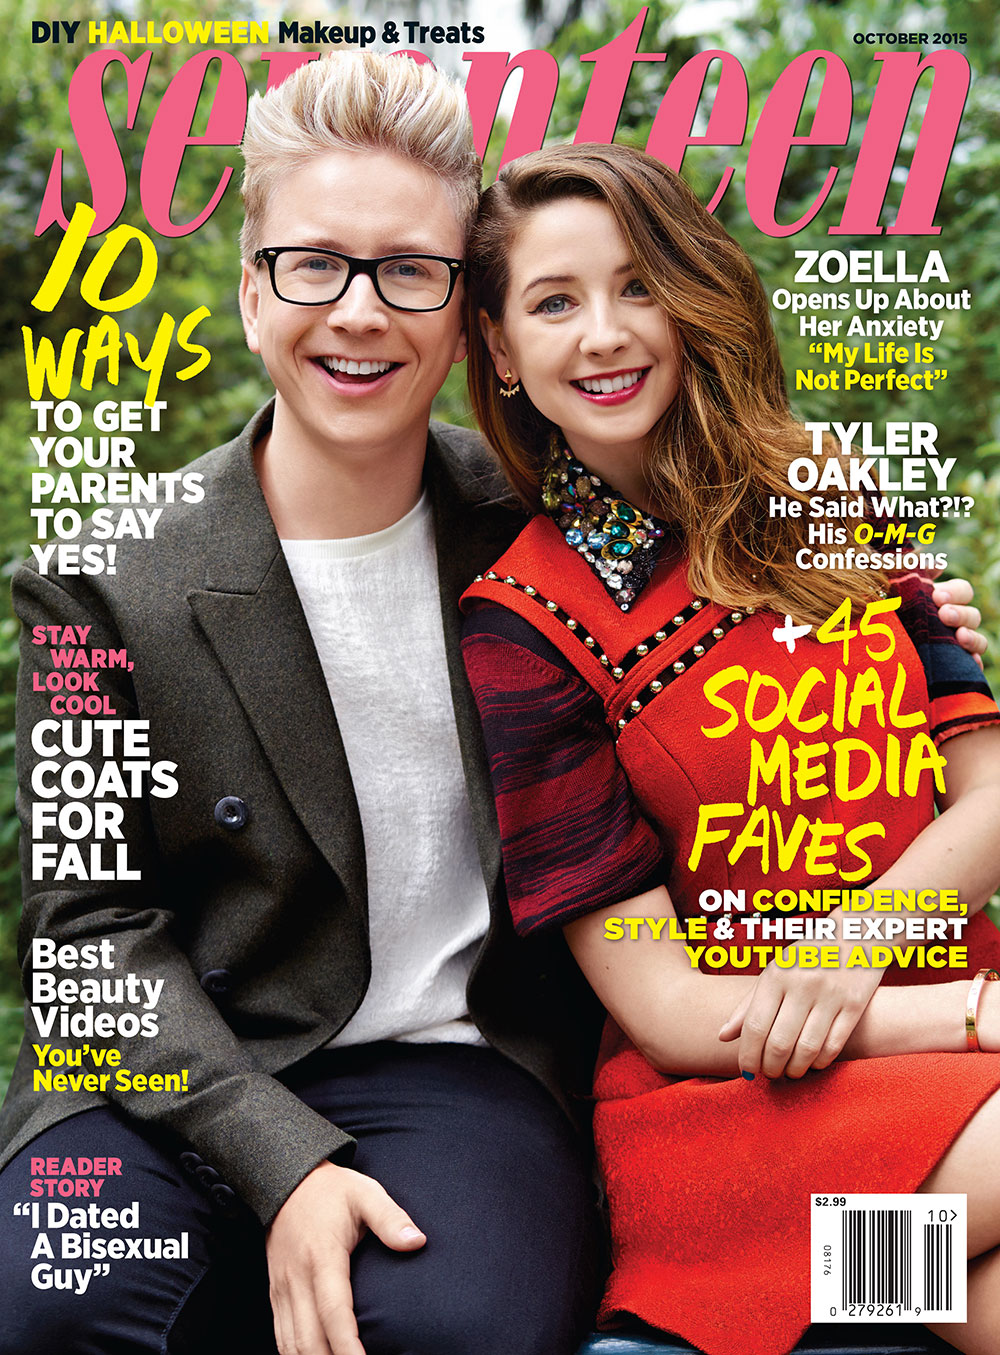 Youtube Gets Updated With Material Design Apk Download: YouTube Megastars Zoella & Tyler Oakley Get Super Real